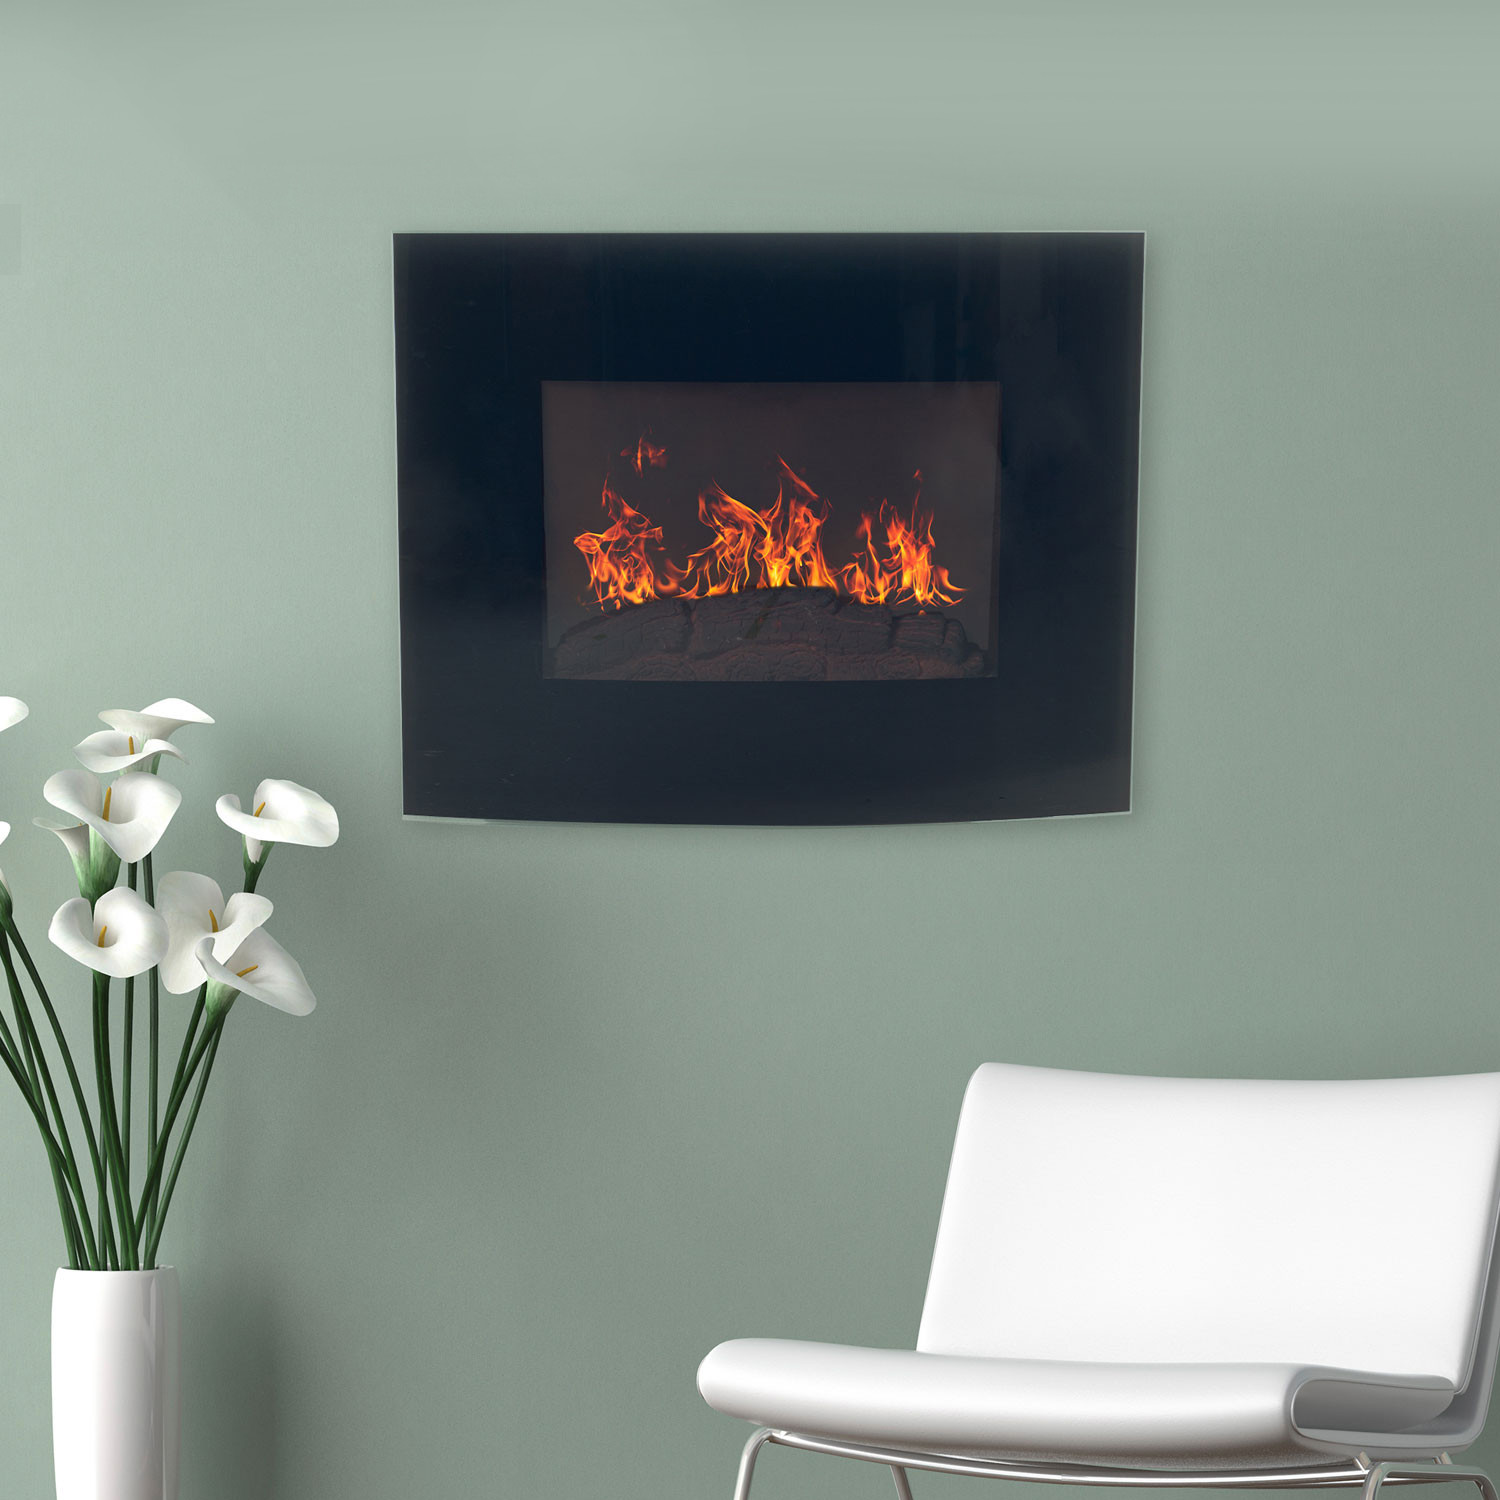 Bring the beauty and warmth of a fireplace to your living space